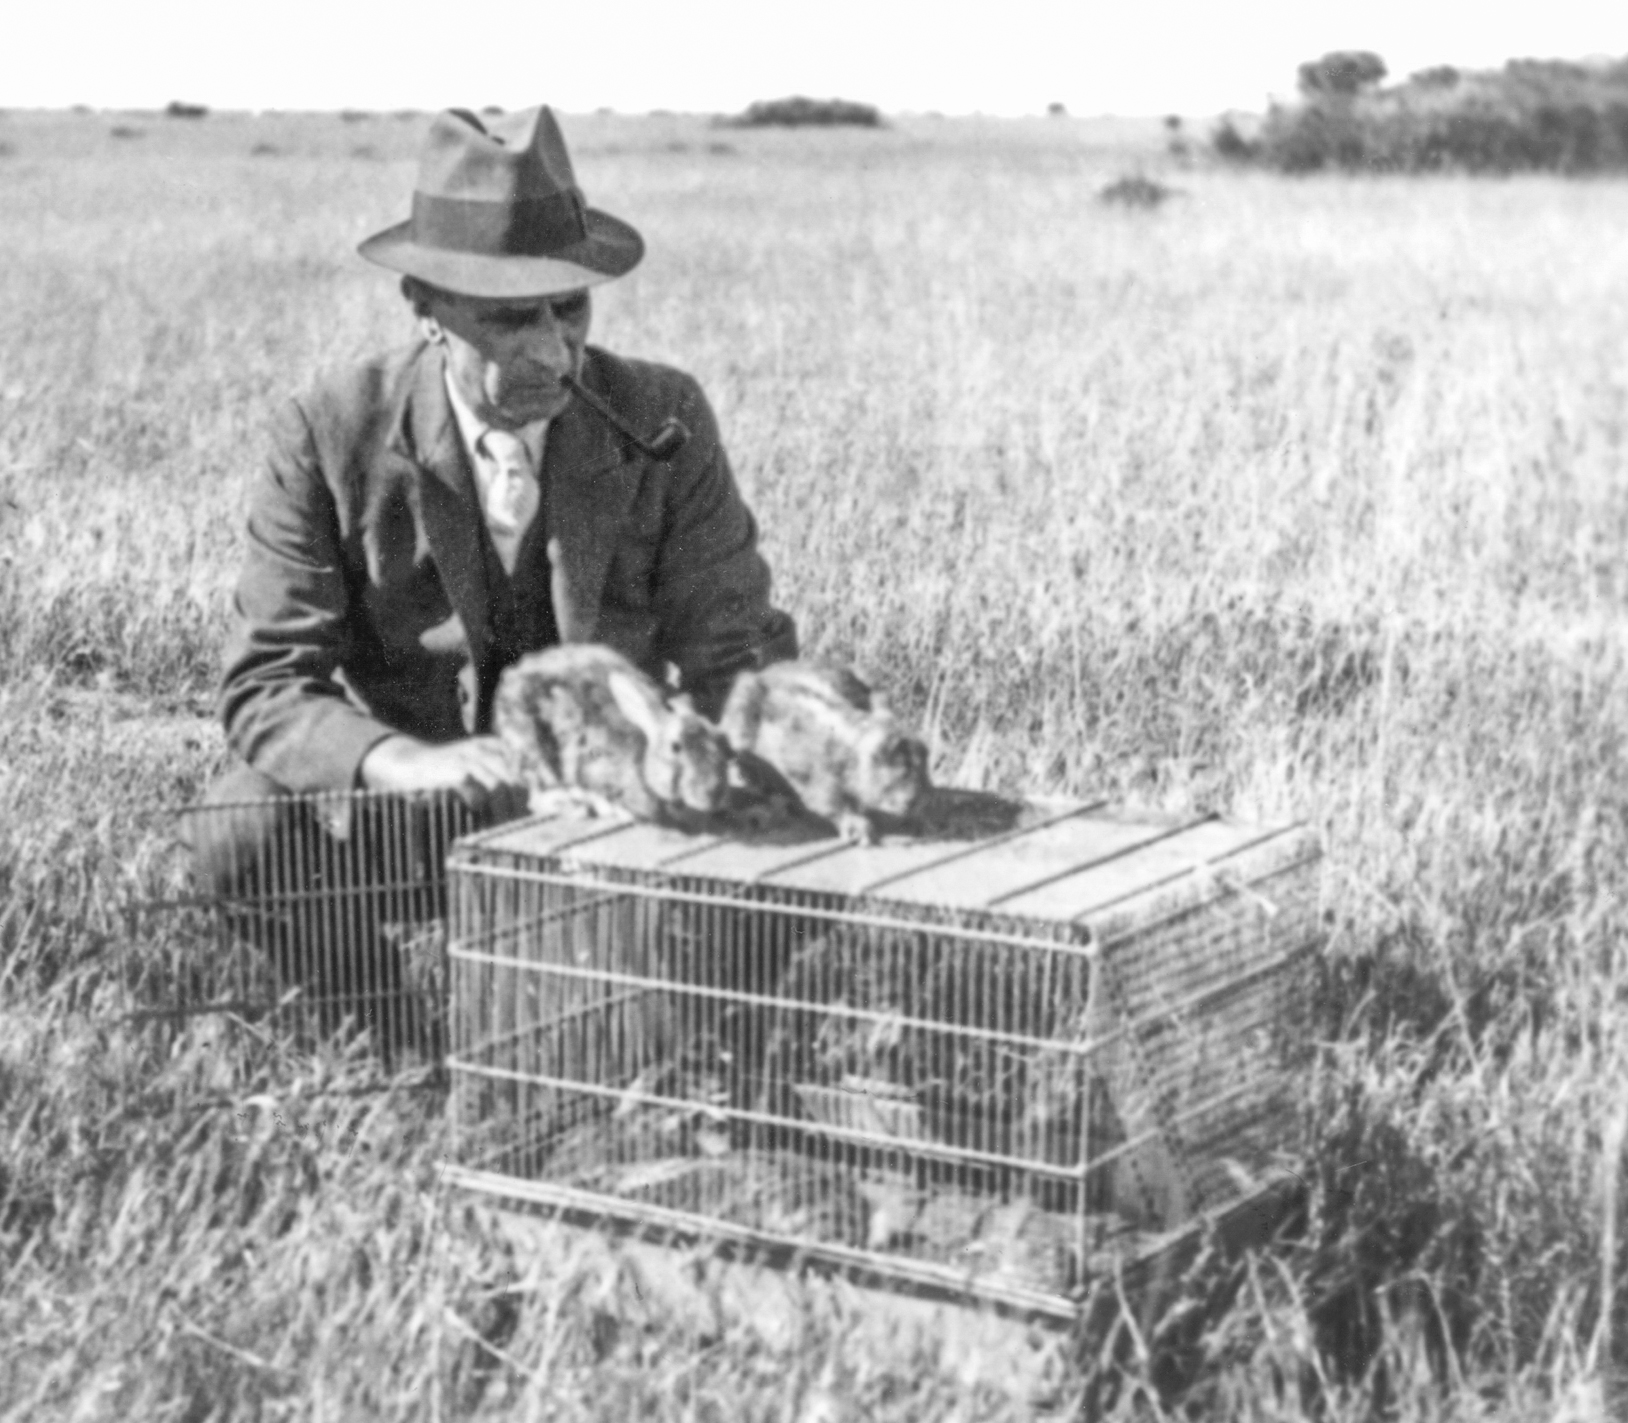 Lionel Bull, Chief of the CSIR Division of Animal Health and Nutition, releasing the first infected rabbits as part of the myxoma virus trial. (click for full size image)